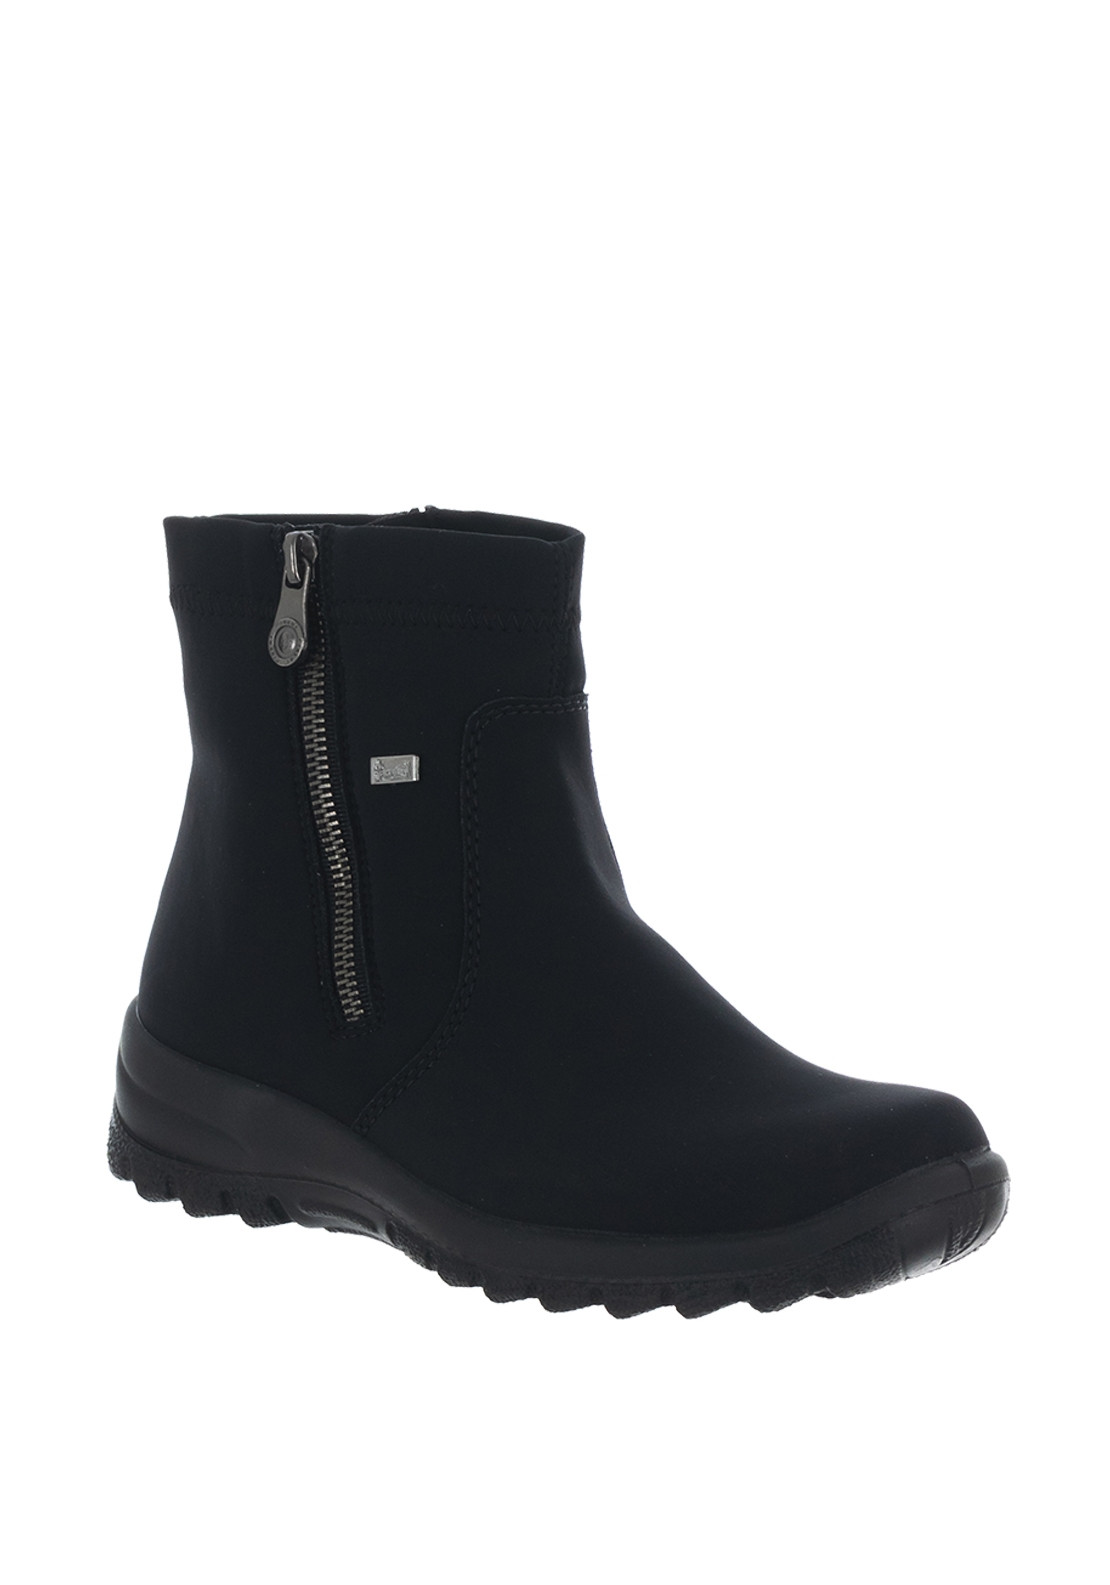 ebdd8217e91dd Rieker Womens TEX All Weather Boots, Black. Be the first to review this  product